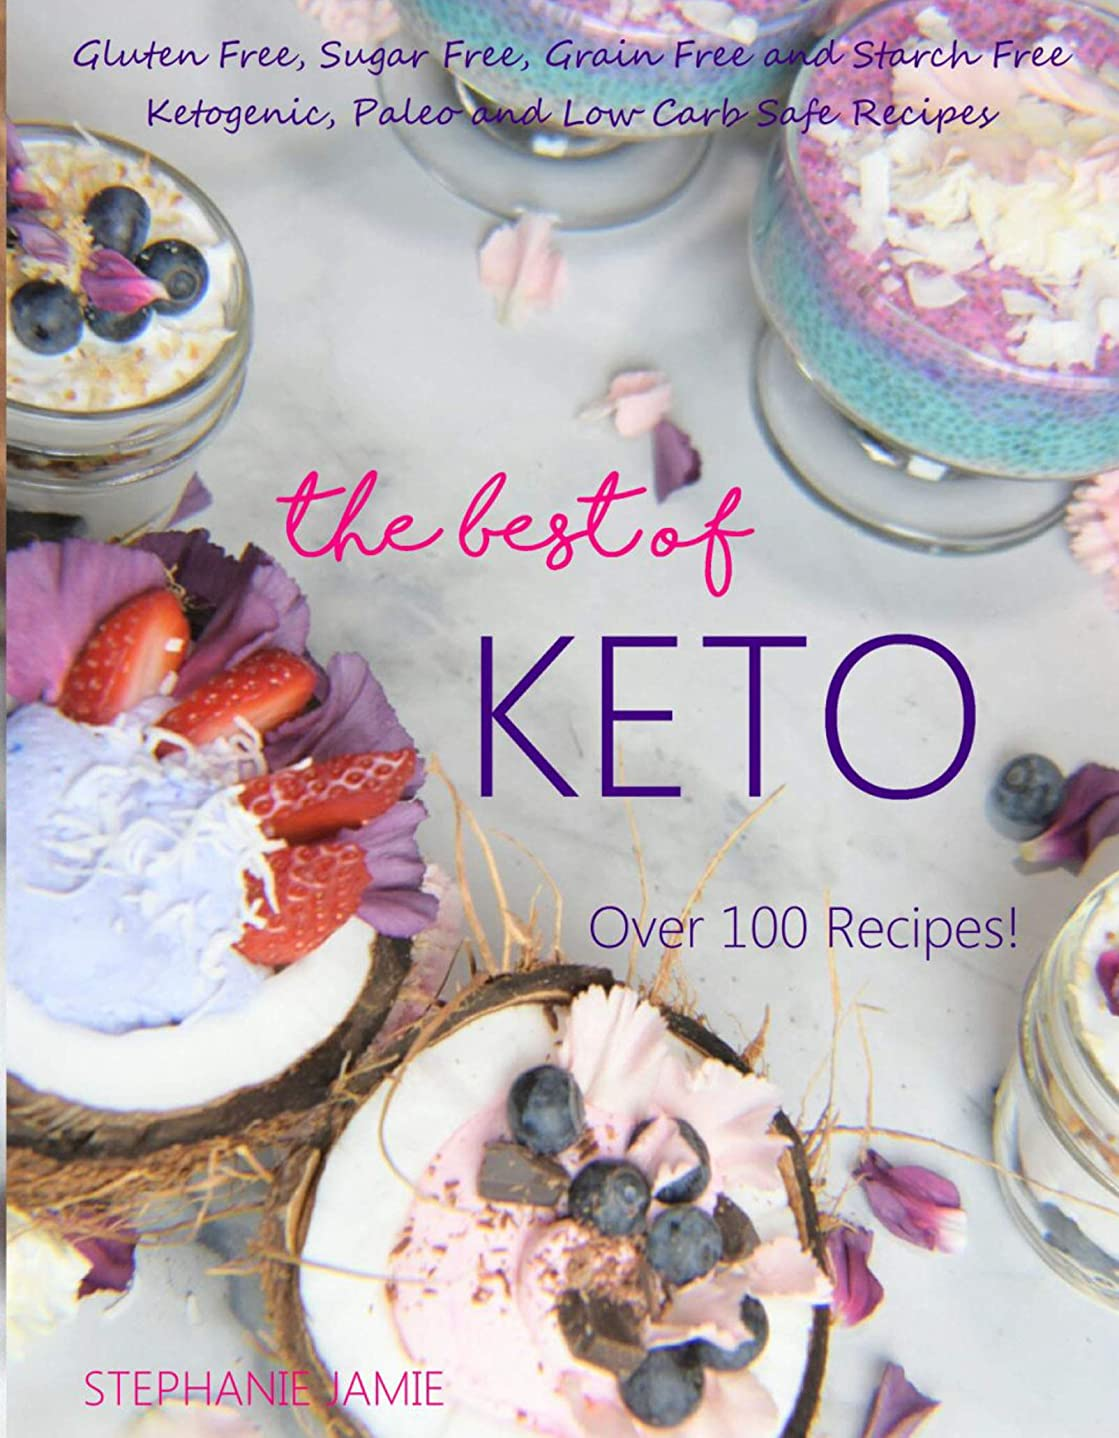 The Best of Keto: Grain Free, Sugar Free, Gluten Free and Starch Free - Ketogenic, Paleo and Low Carb Safe Recipes (English Edition)